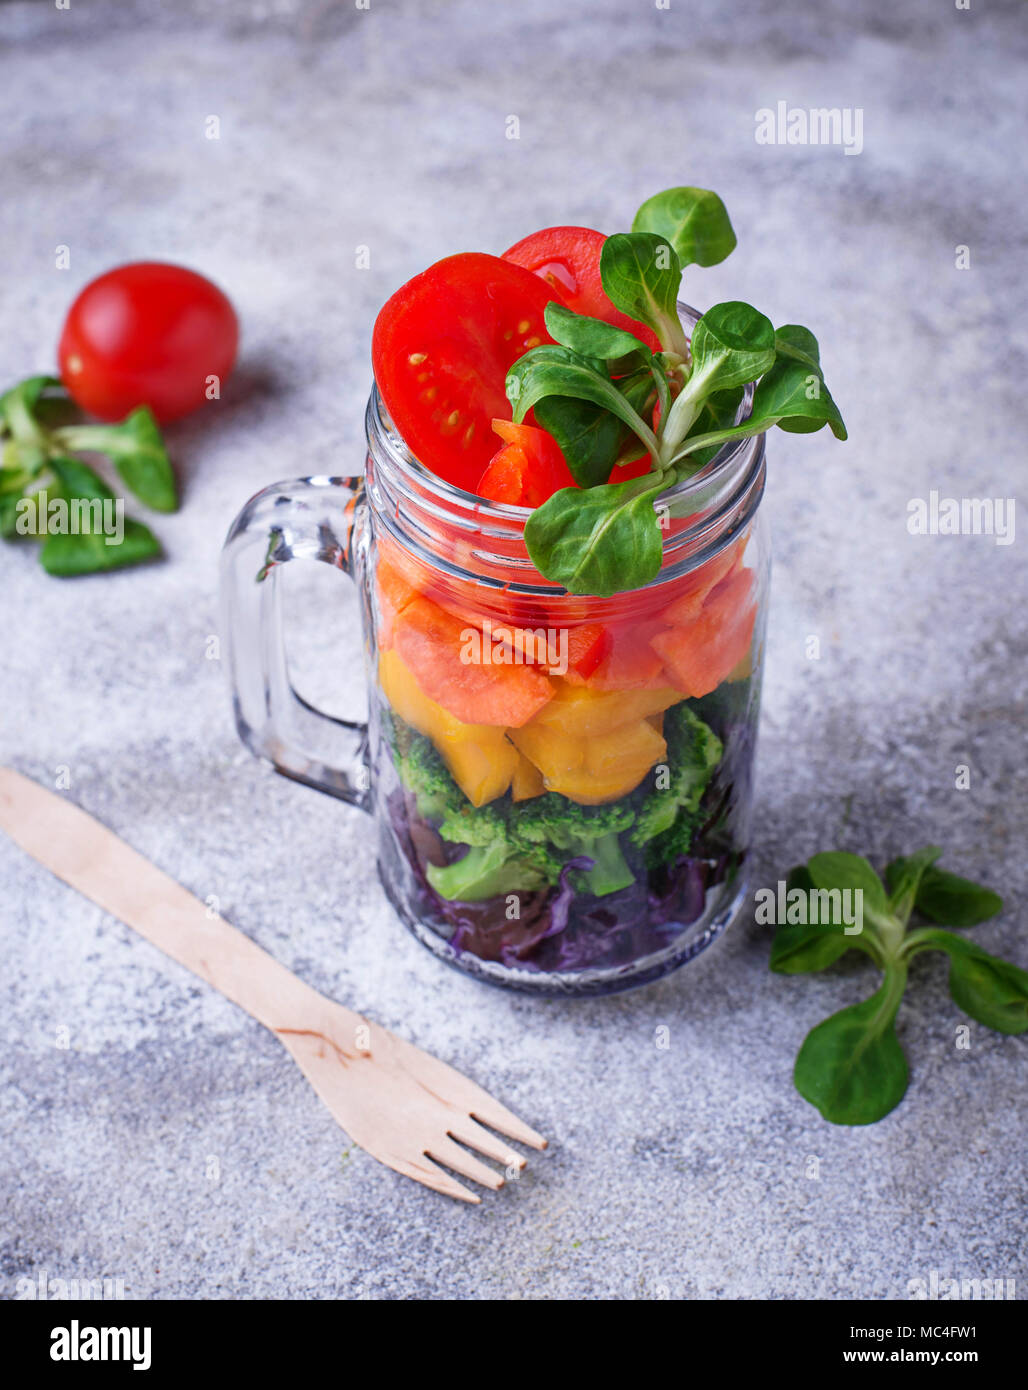 Vegetarian rainbow salad in a glass jar - Stock Image